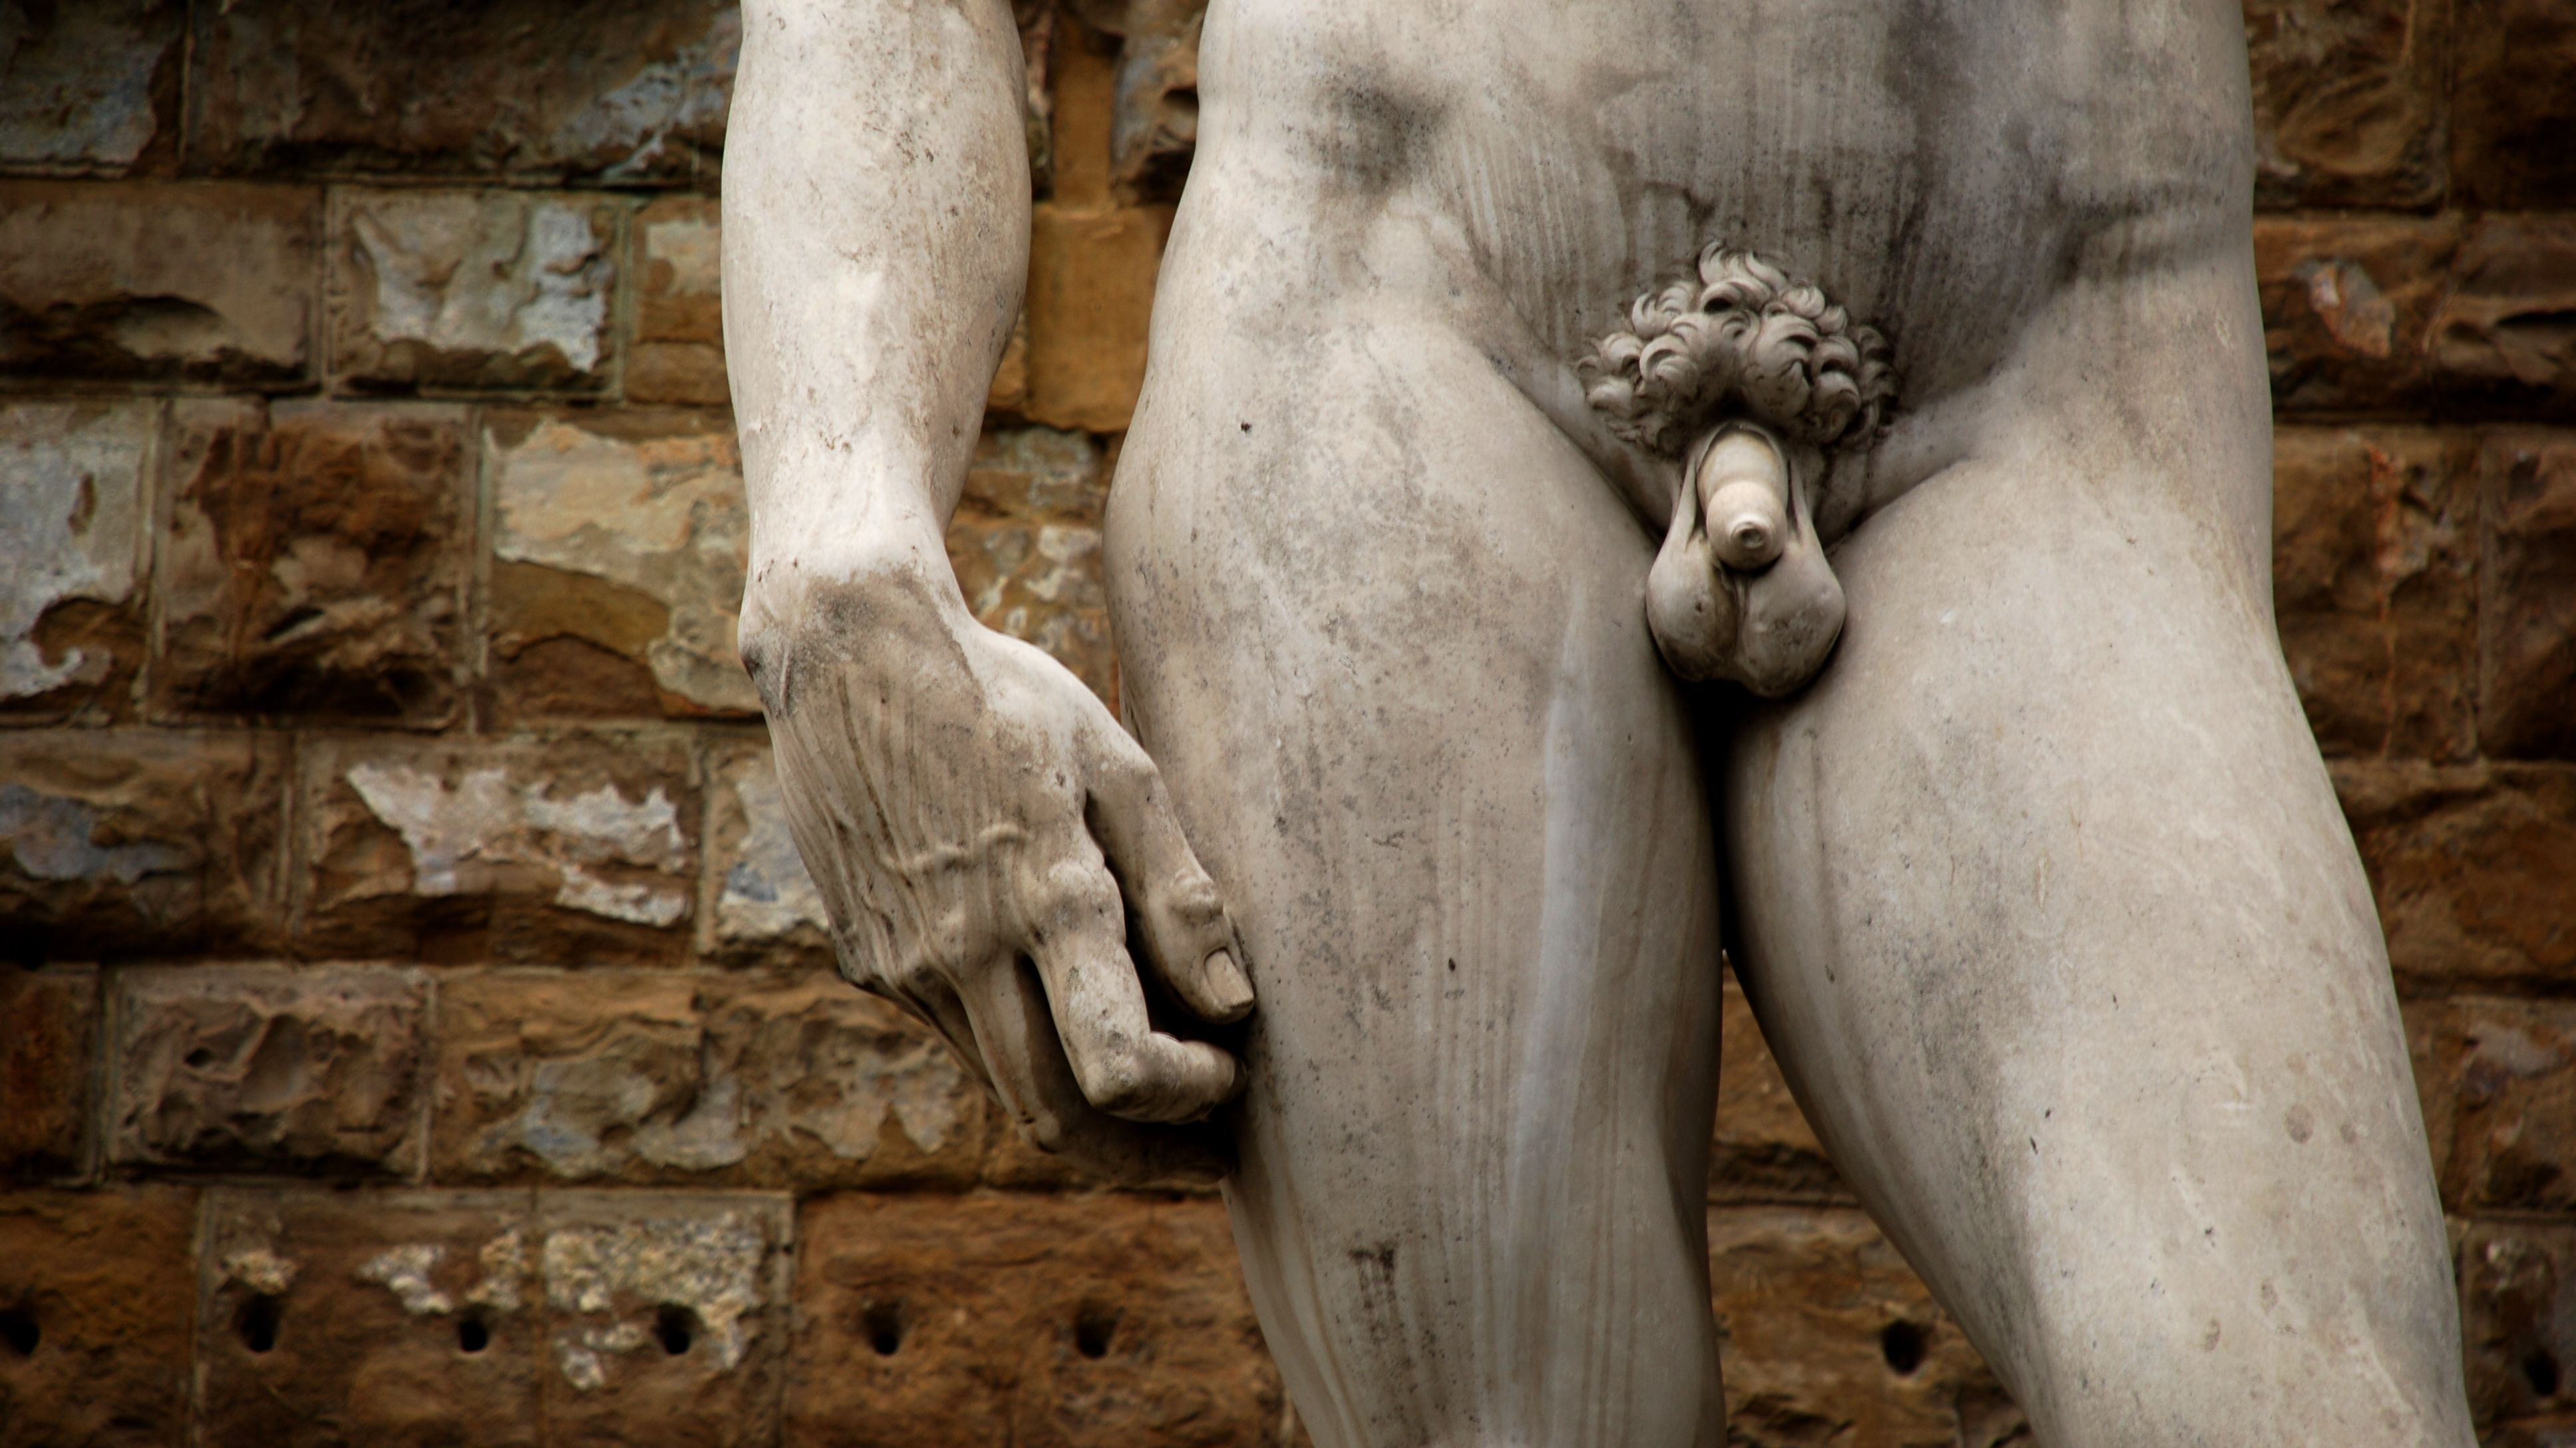 12 Facts About the Penis | Mental Floss